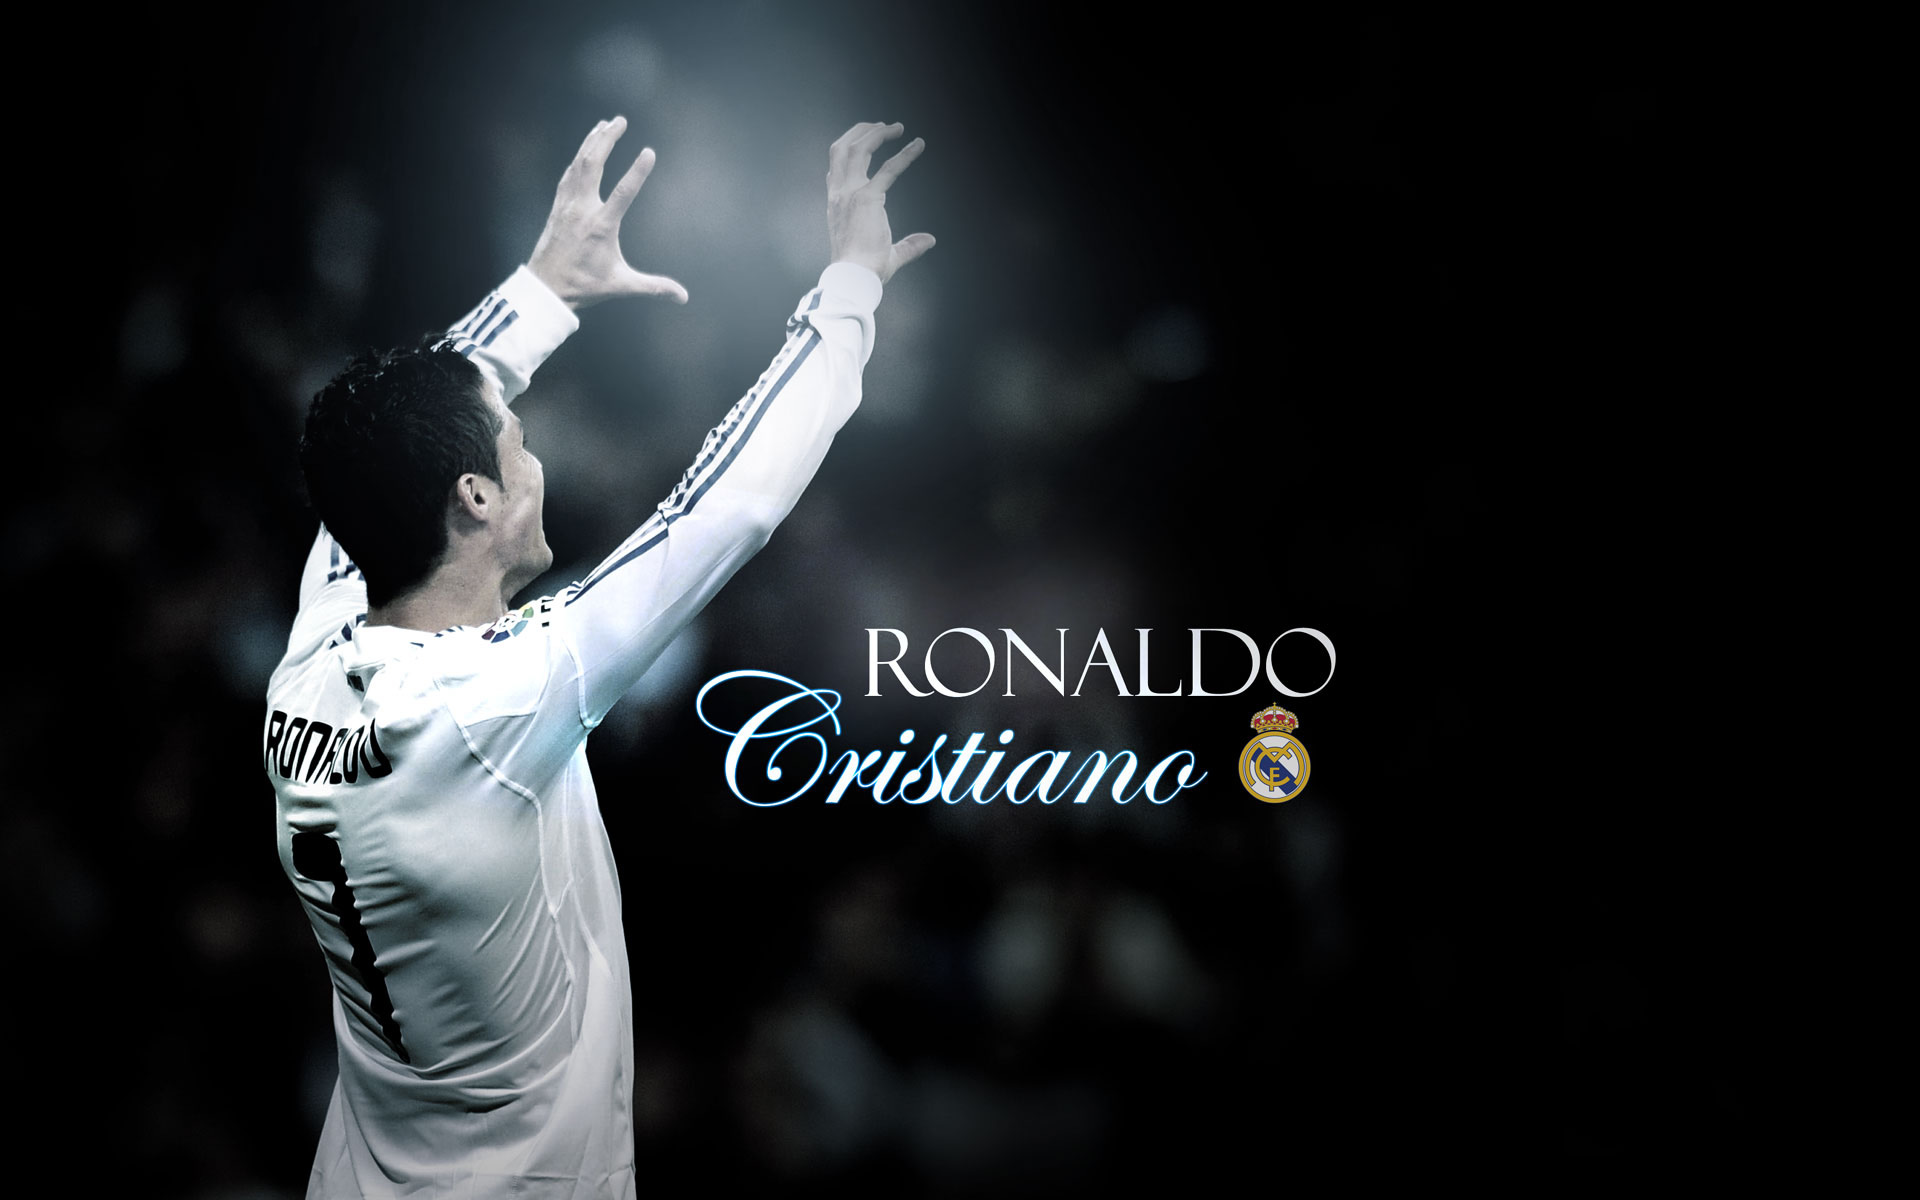 Cristiano Ronaldo arms up wallpaper